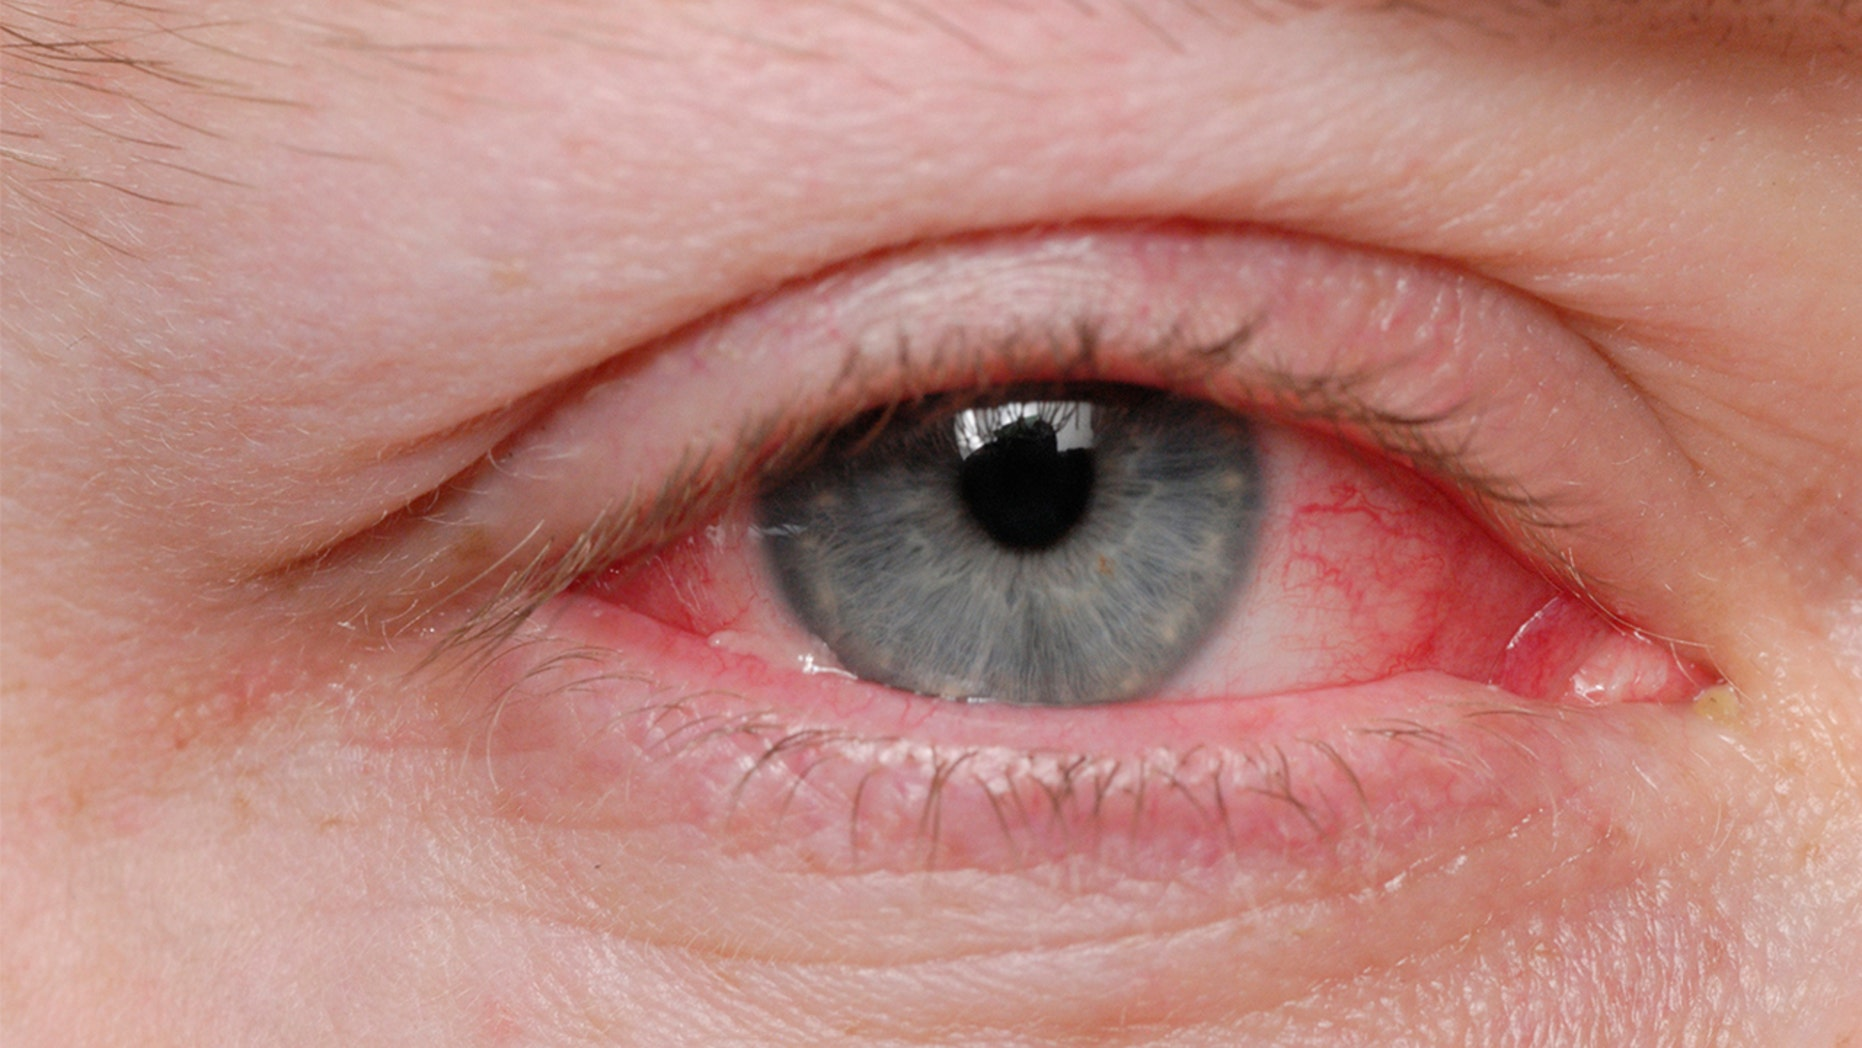 A man in Italy was diagnosed with a rare condition that causedhim to bleed from his eyes.